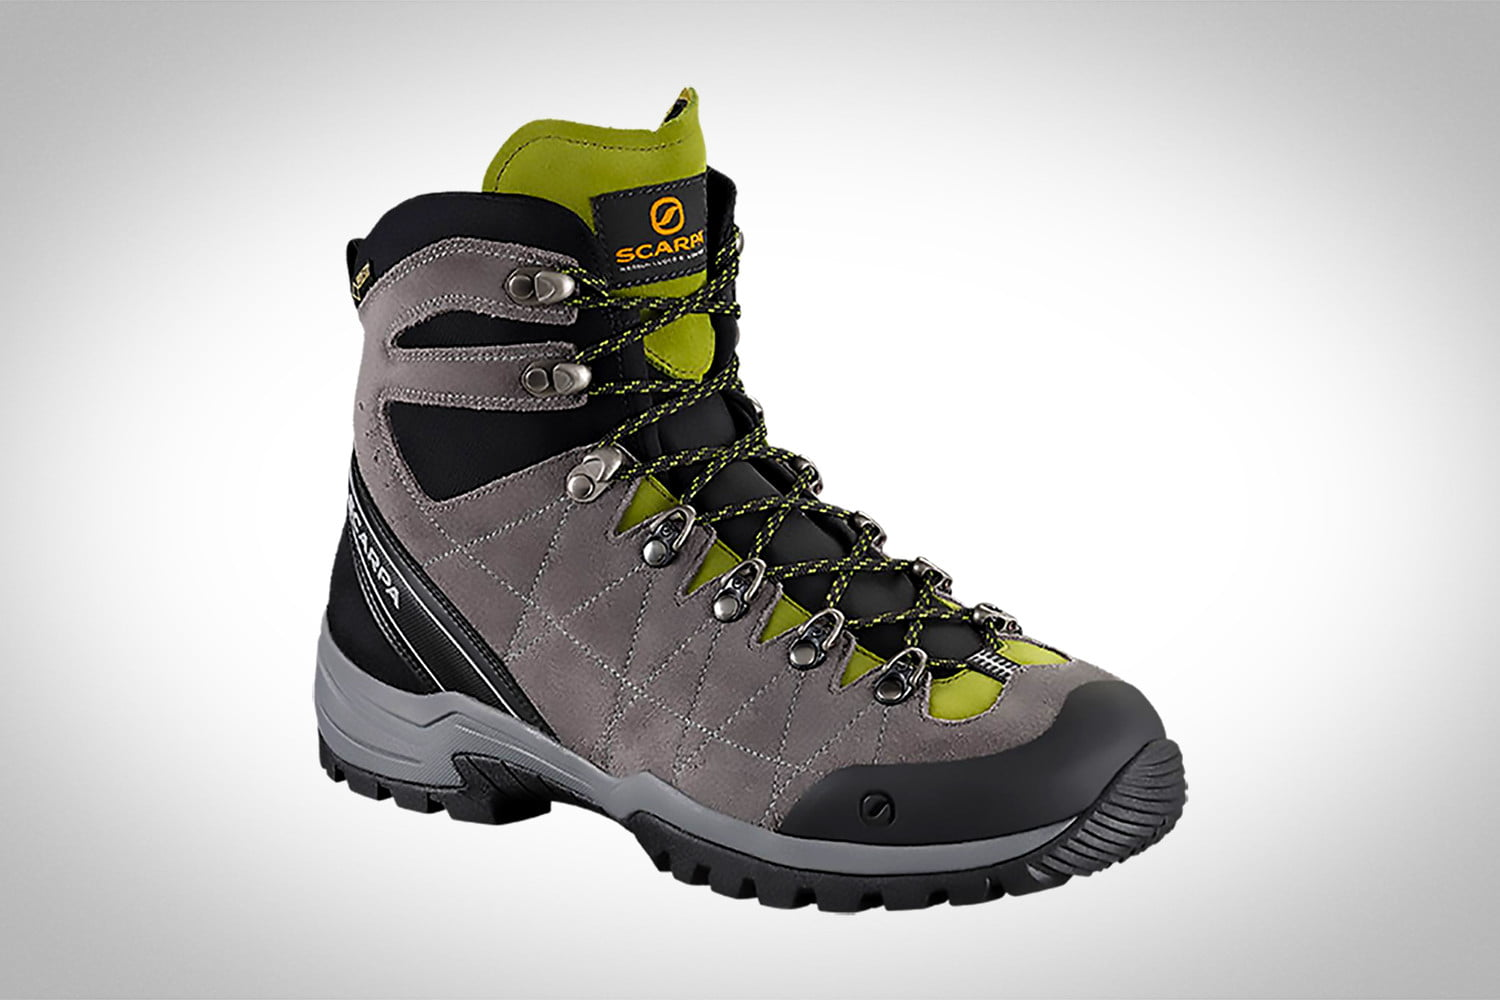 of gear boots comfortable best hiking full walking lead patrol the comforter chukka